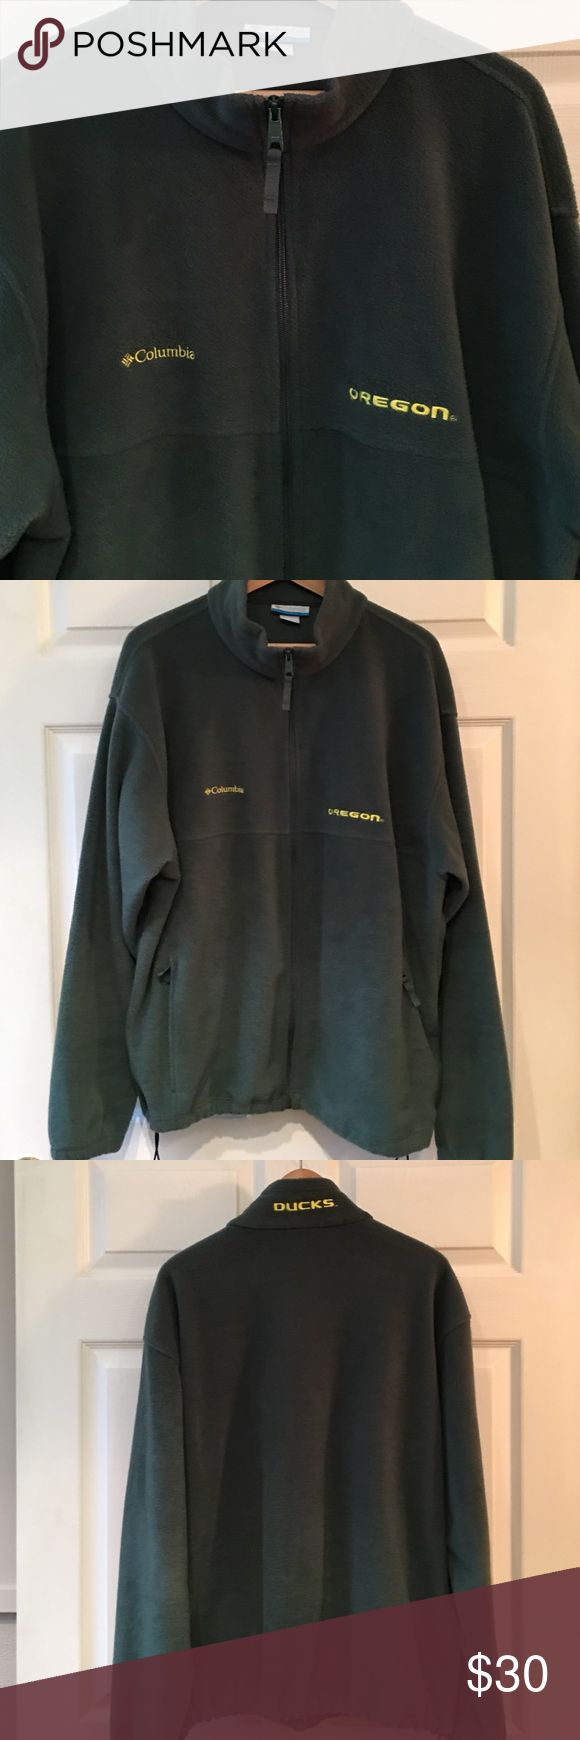 Men's Columbia Oregon Ducks Fleece Coat 100% Polyester and in excellent condition!  Hubby is no longer a size XL.  Must sell to fund replacement Duck wear!  Sorry, not many tees available as we had an Oregon Duck quilt made!  Go Ducks! Columbia Jackets & Coats Performance Jackets